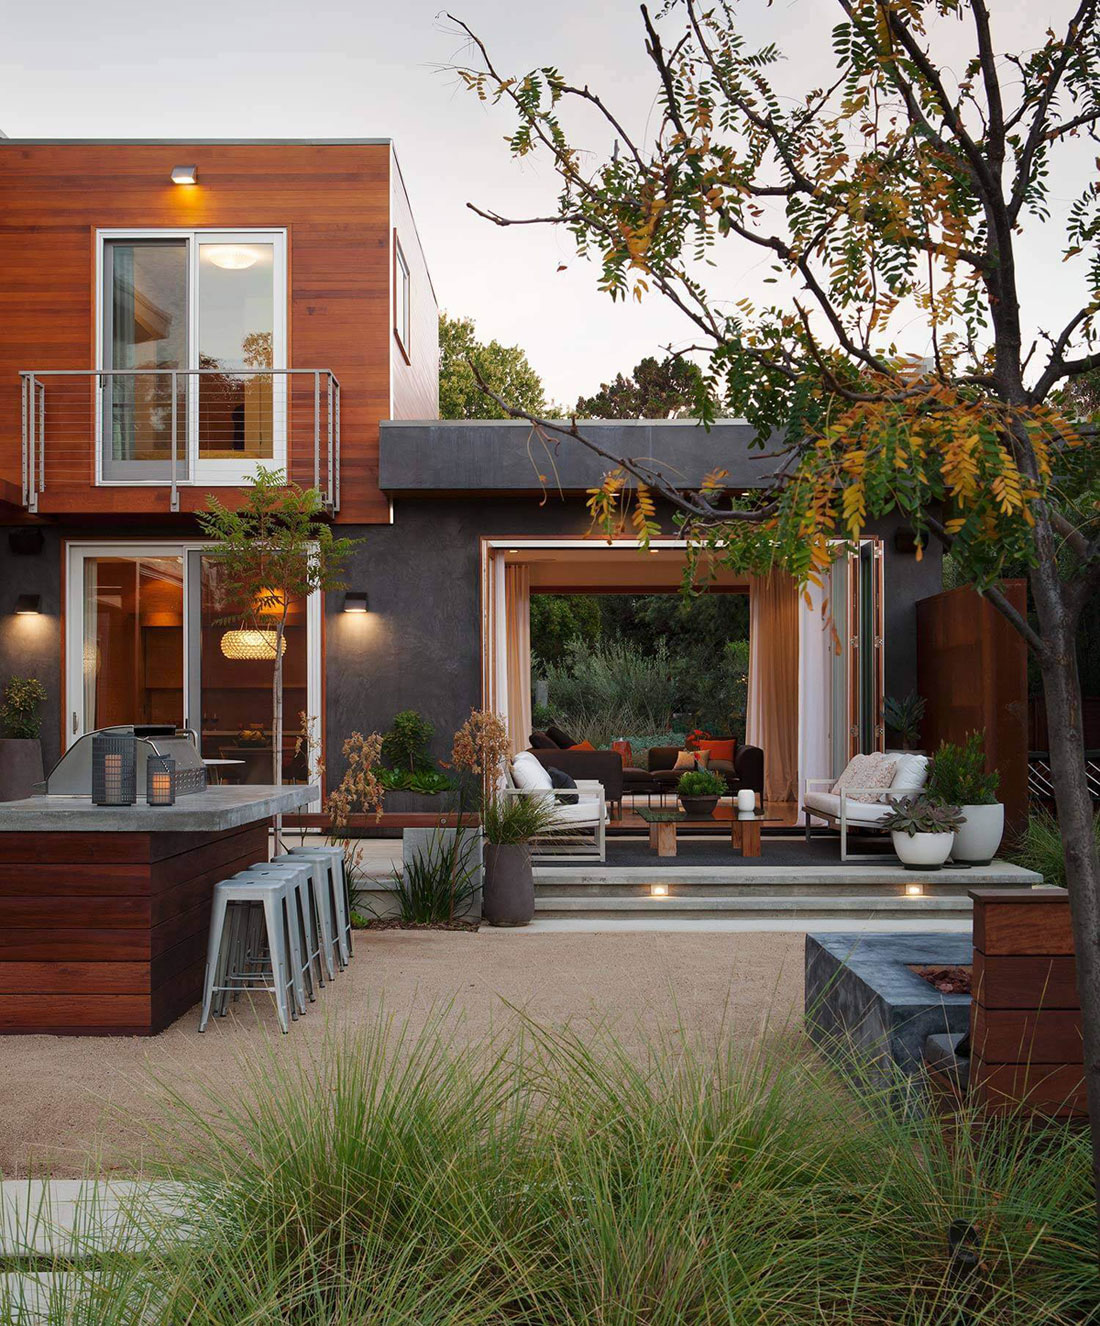 Los Altos House by Dotter Solfjeld Architecture (12)